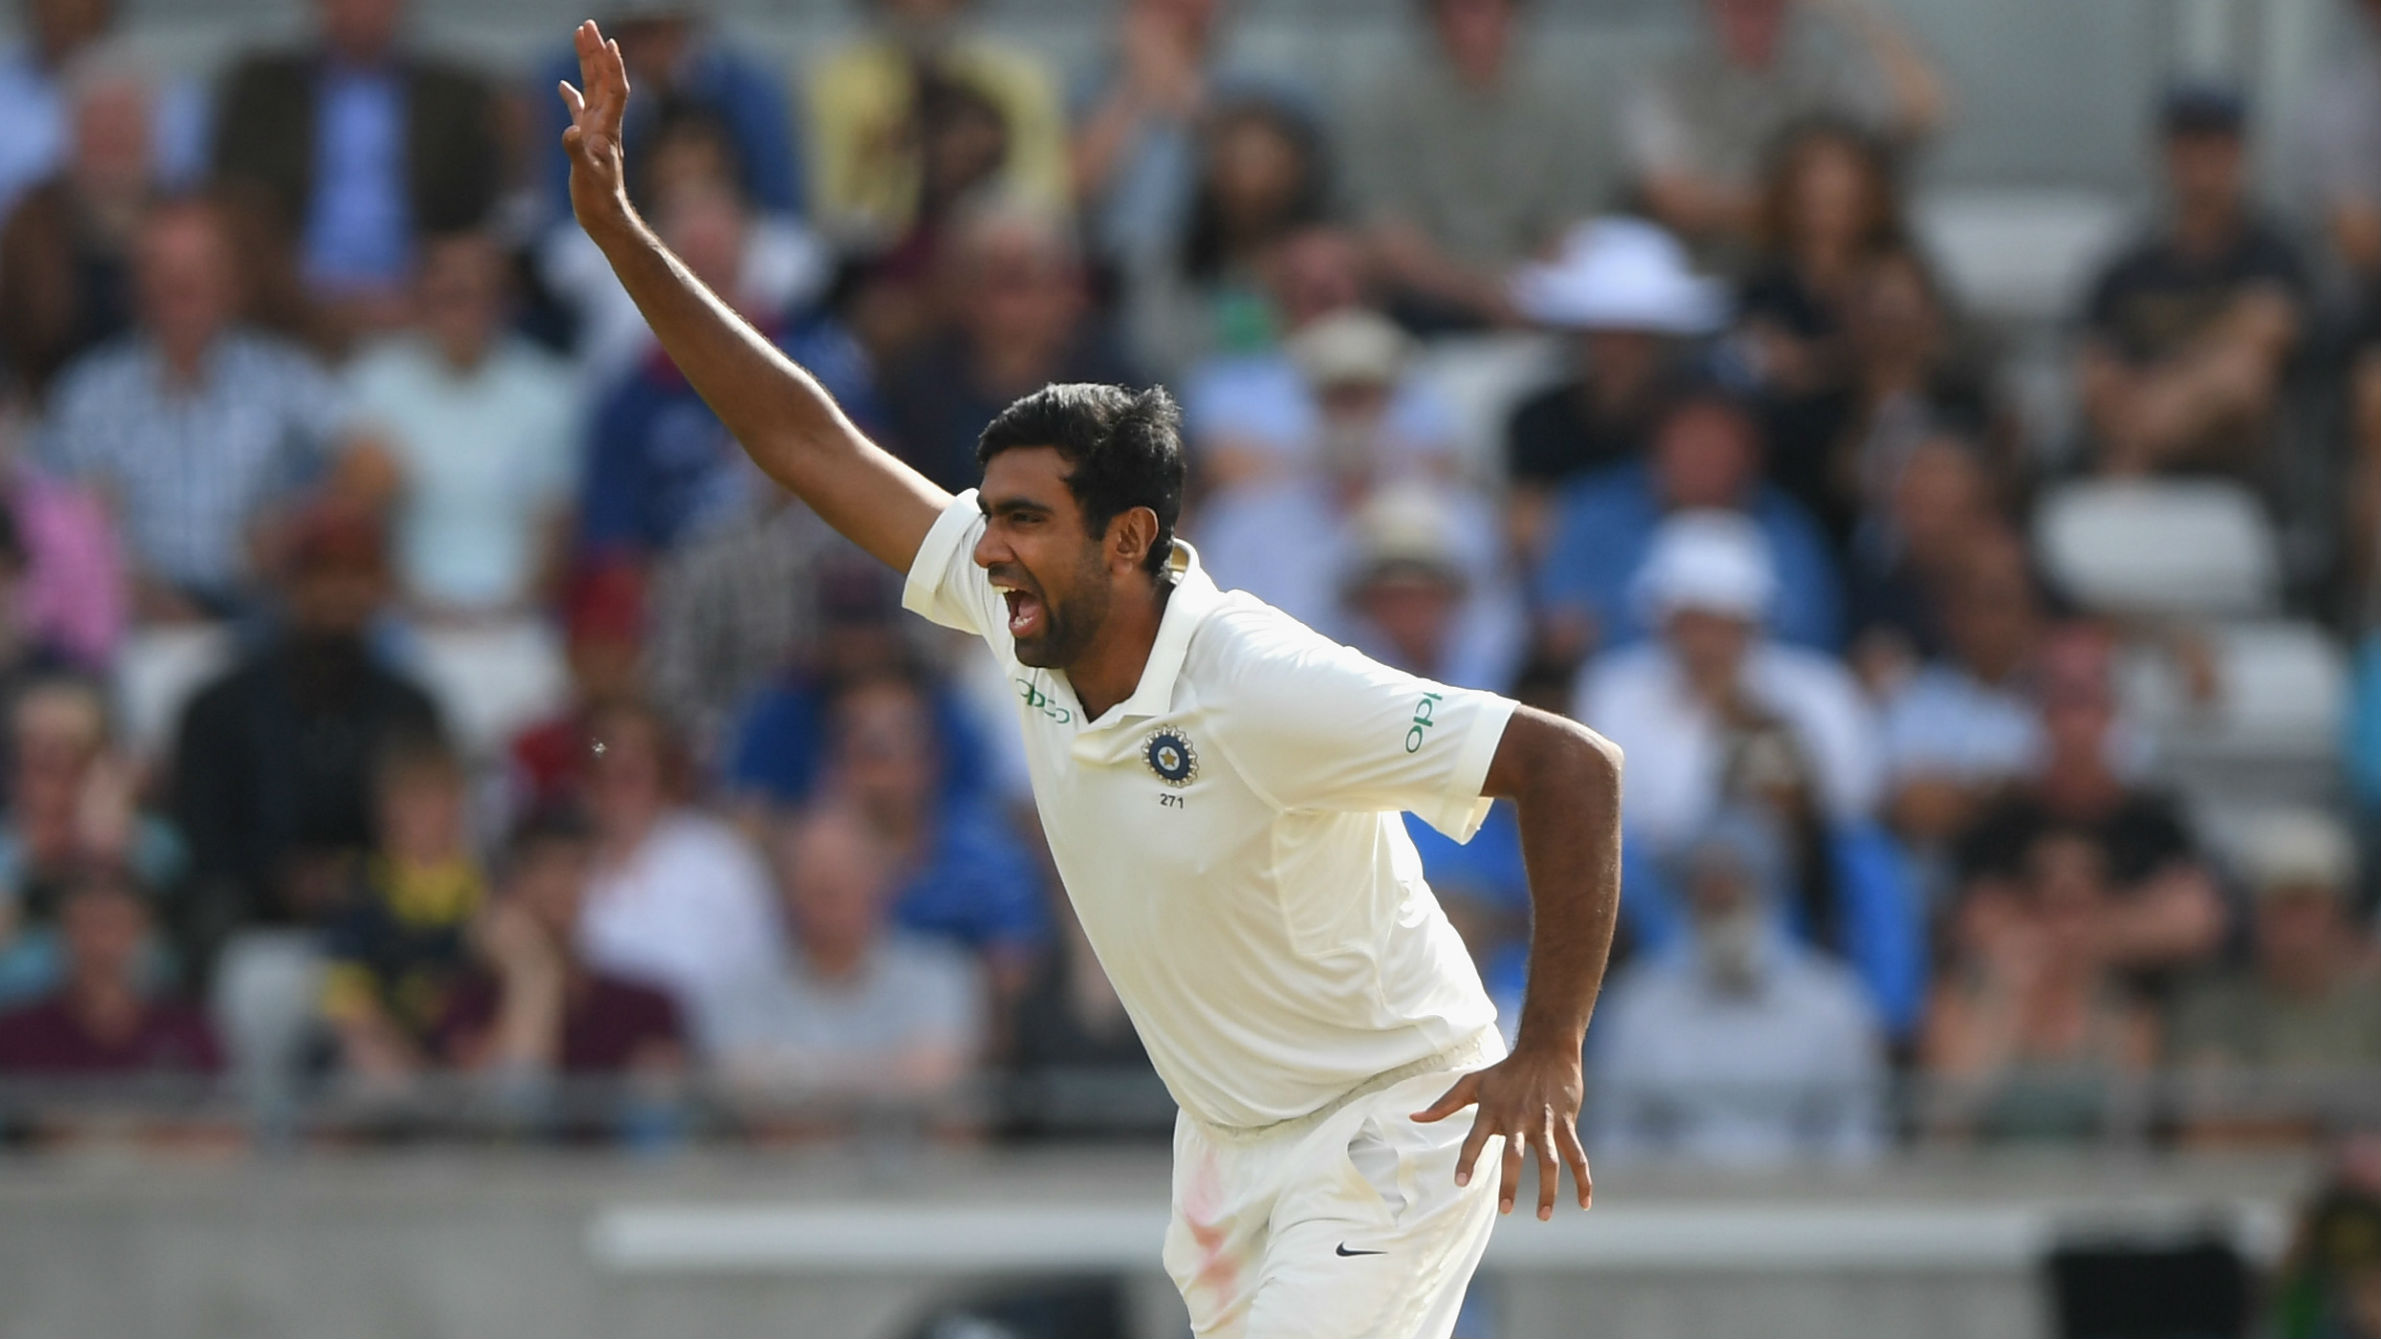 The magnificent Ravichandran Ashwin has become only the fourth India bowler to take 400 Test scalps.